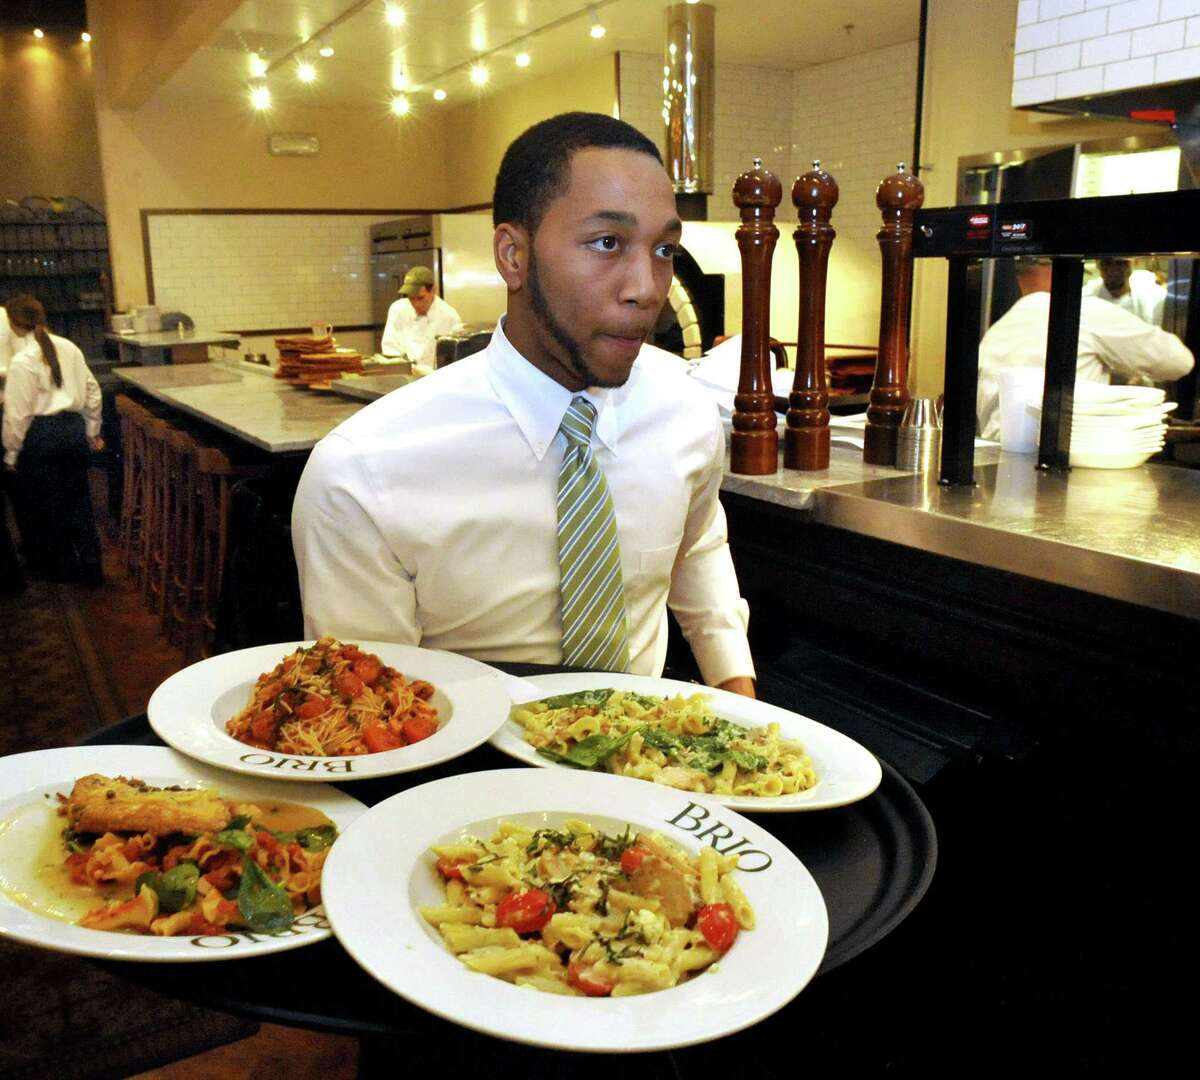 A waiter delivers food in 2012 at Brio at Danbury Fair mall in Danbury, Conn.